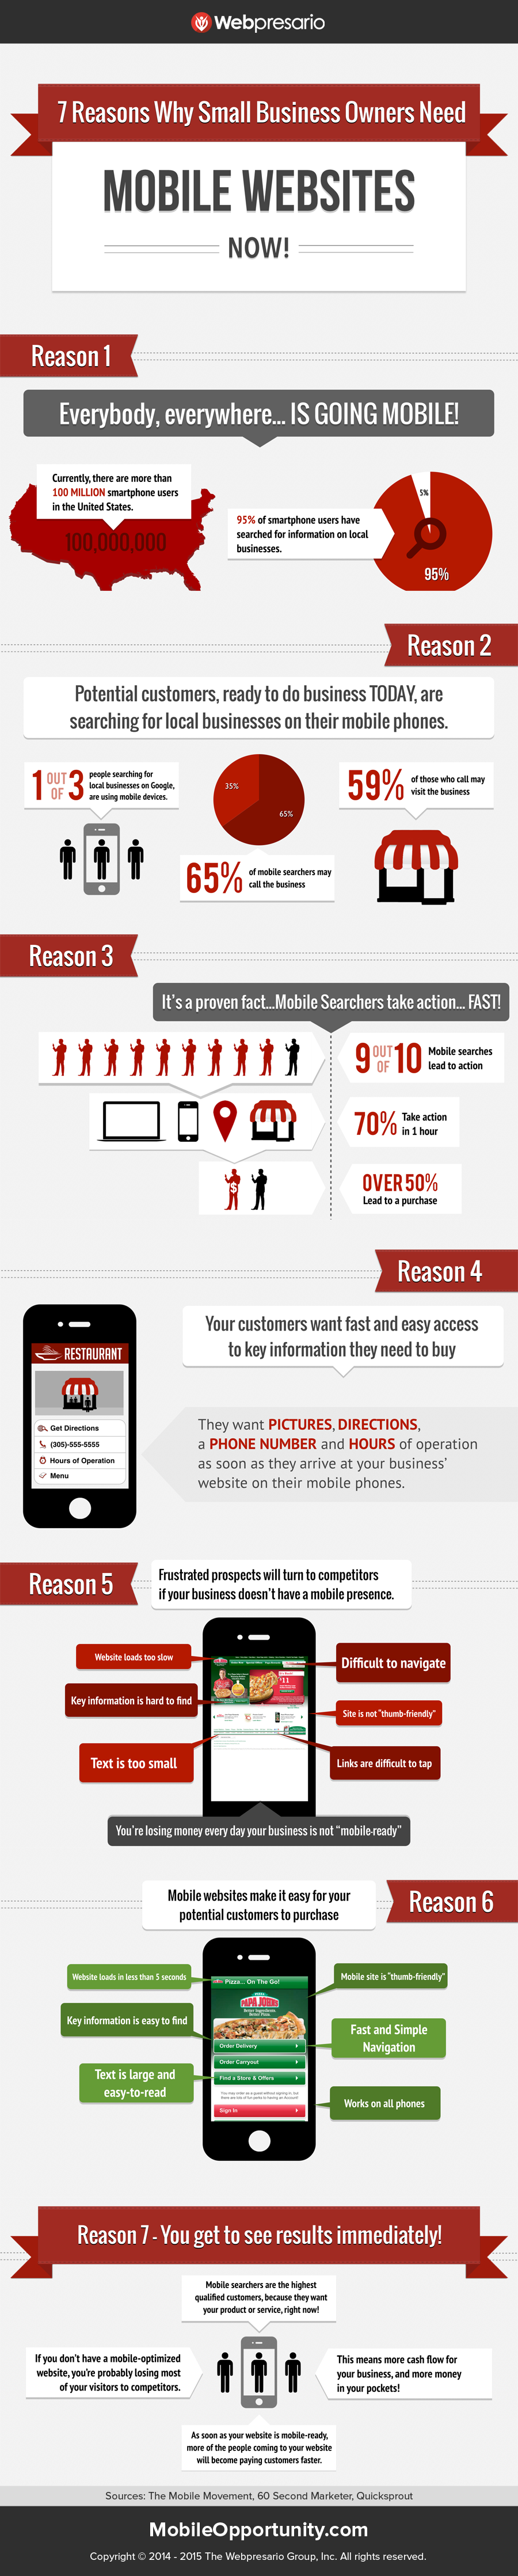 03 mobile-opportunity-infographic